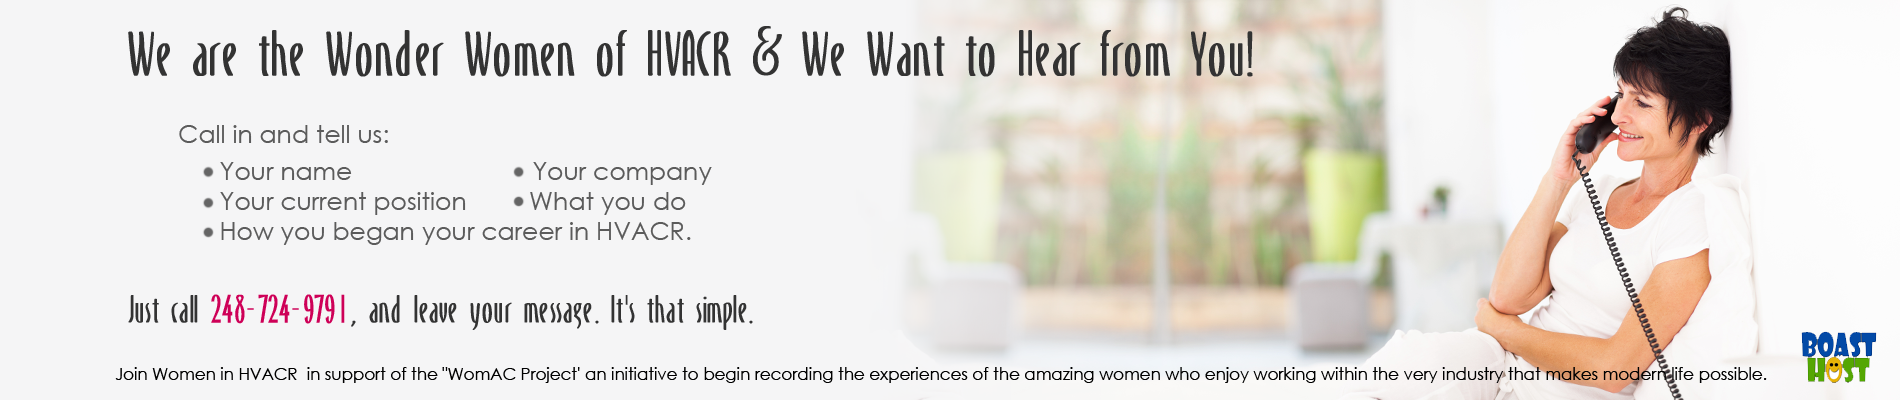 Tell us about your experiences as a woman in the HVAC industry